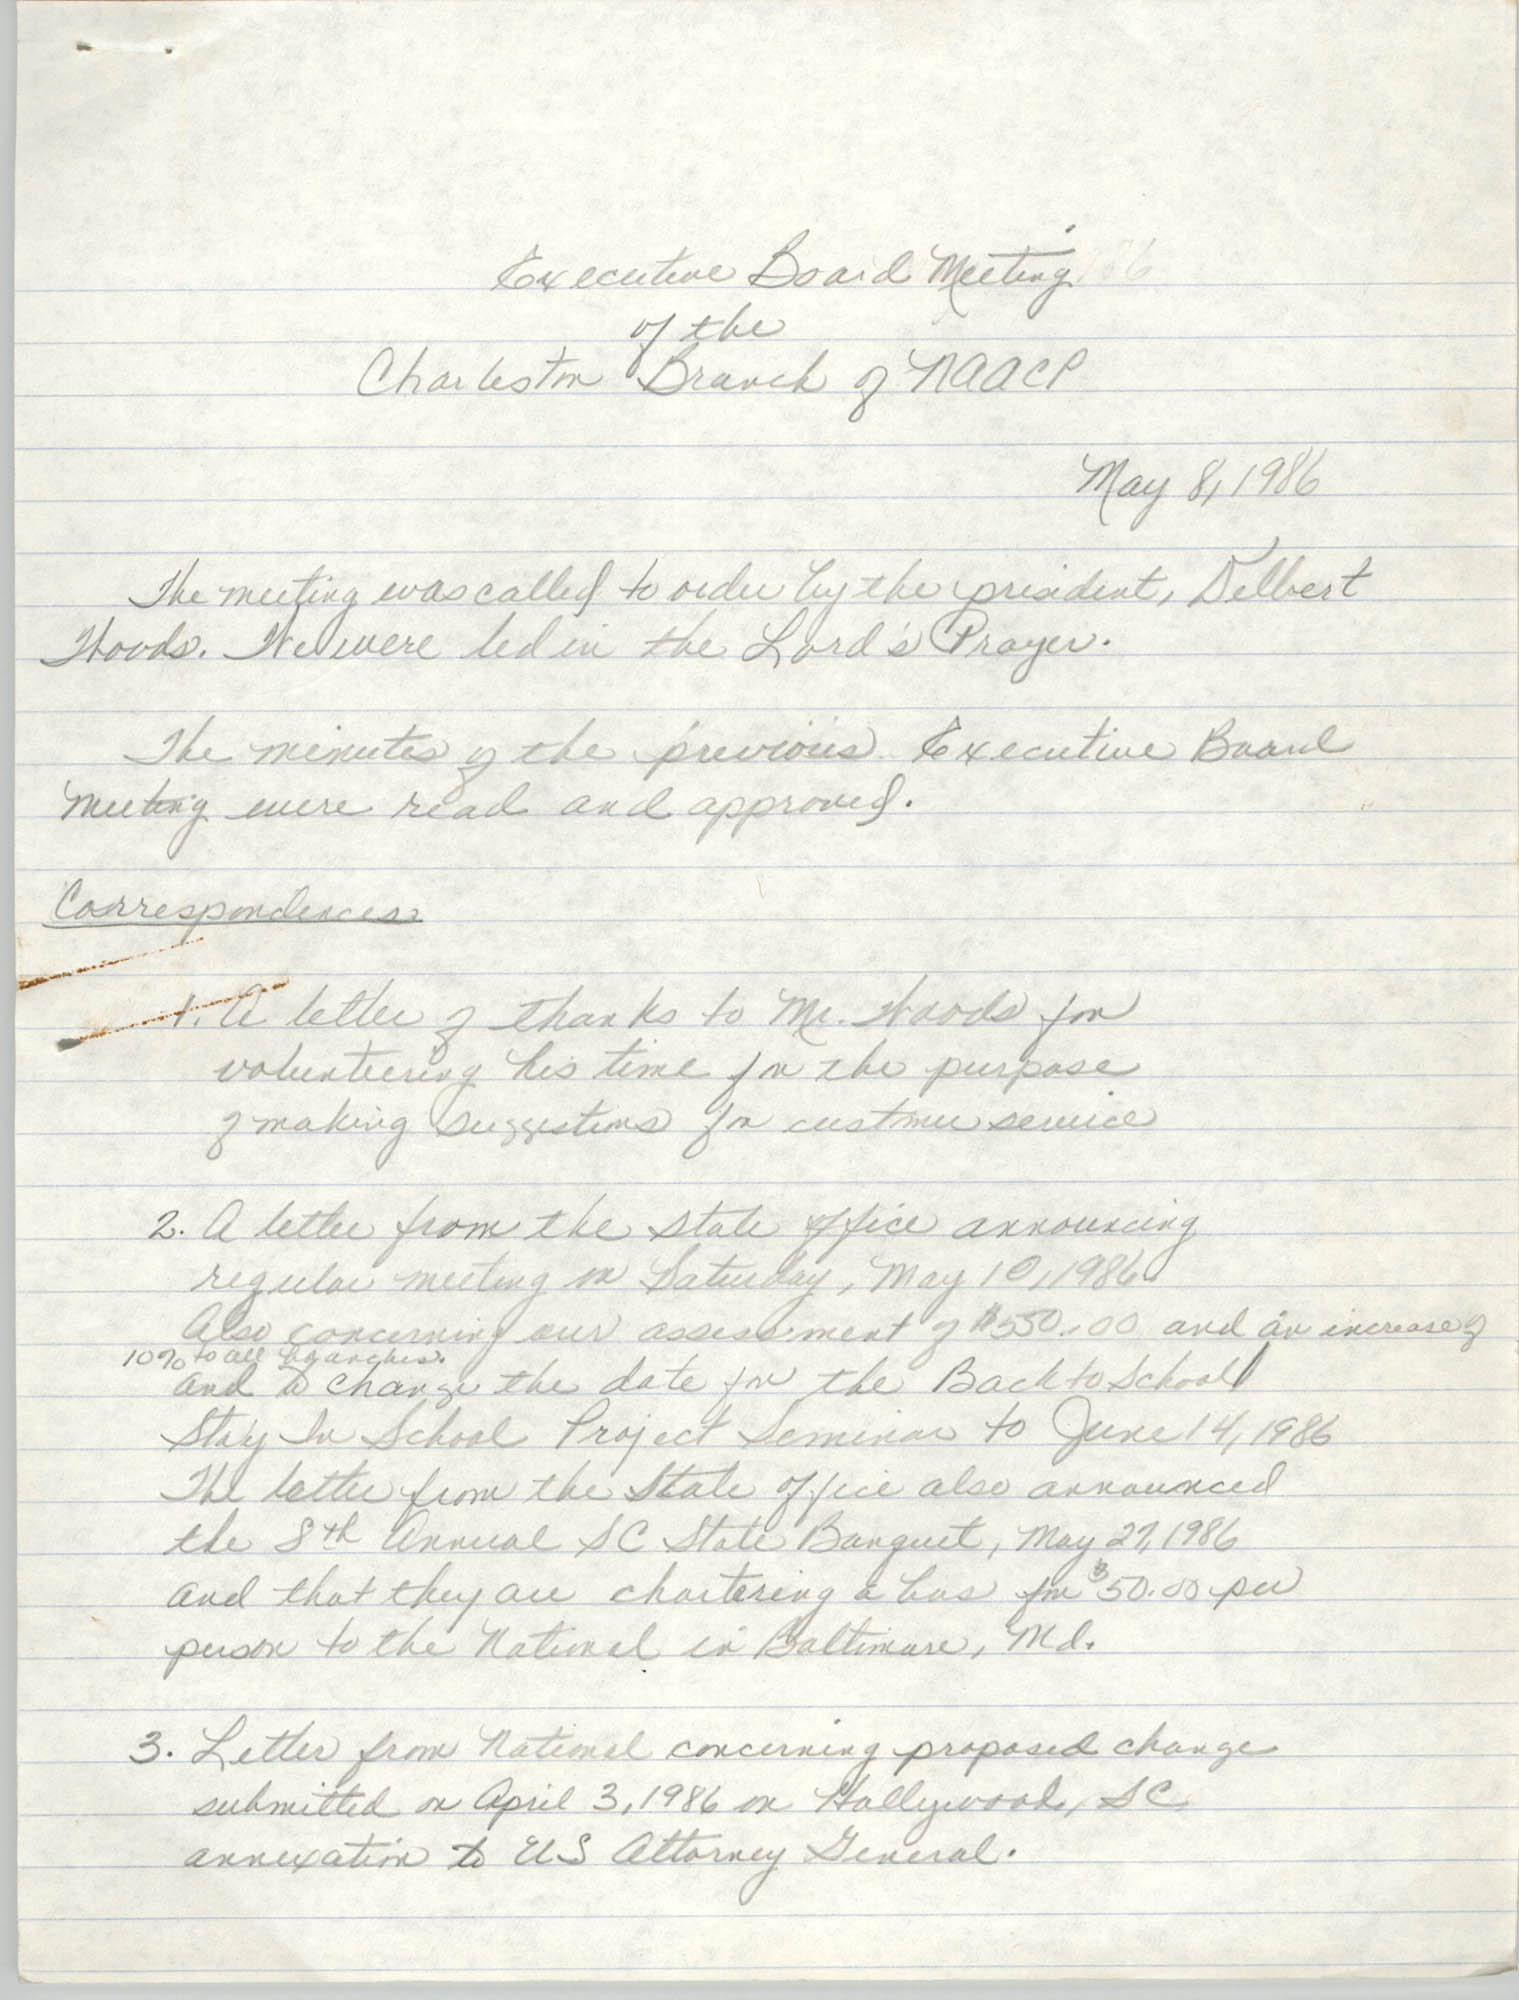 Minutes, Executive Board Meeting, Charleston Branch of the NAACP, May 8, 1986